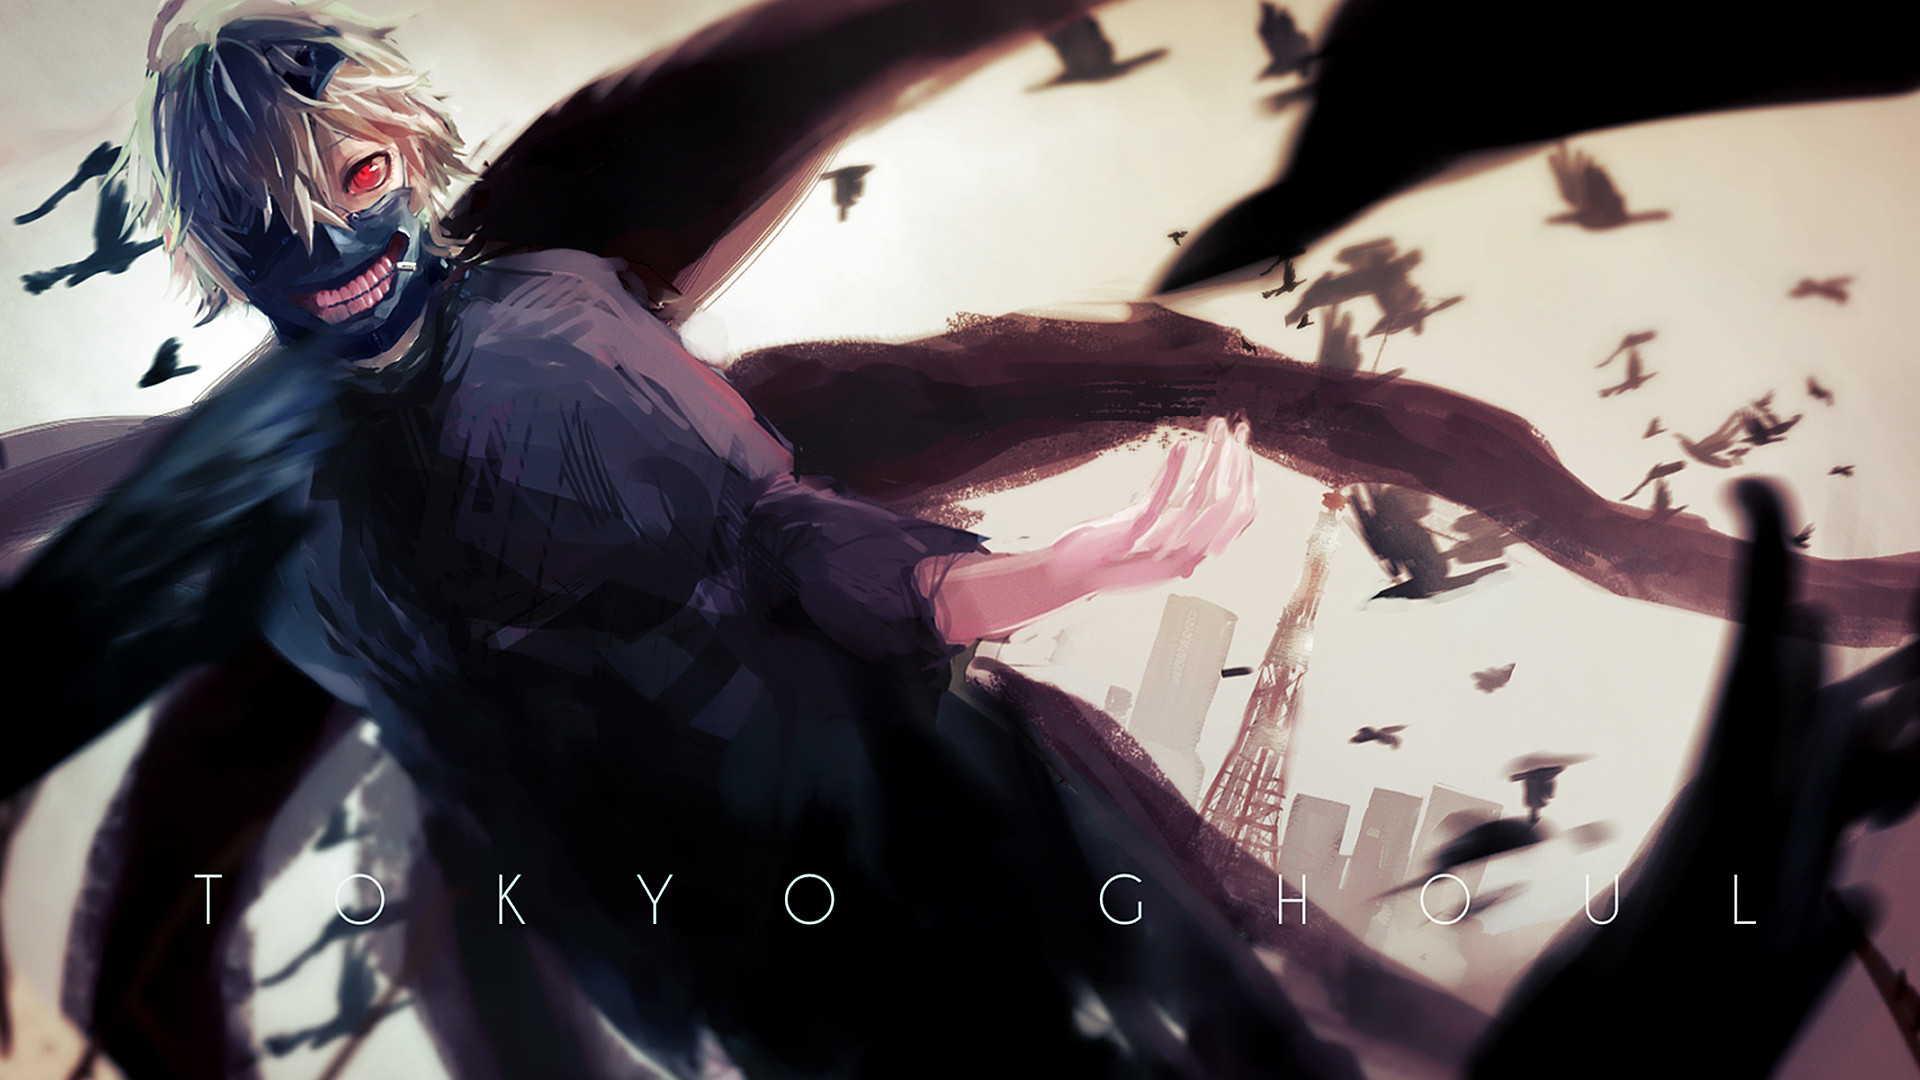 Image for Free Tokyo Ghoul Anime HD Wallpaper 22